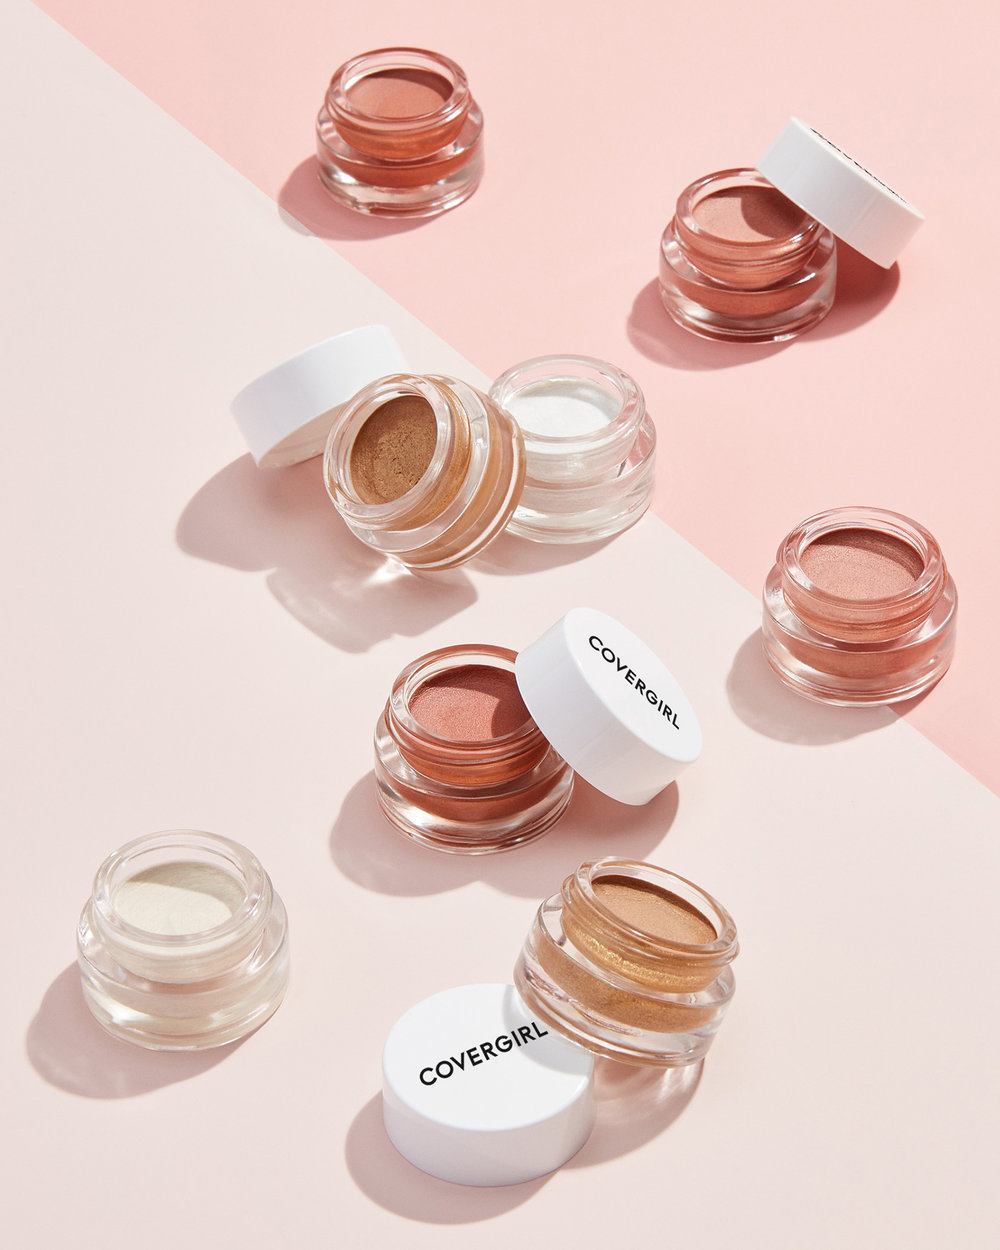 tom-medvedich-still-life-cosmetics-covergirl-Vitalist-Healthy-Glow-Highlighter-Group-02.jpg